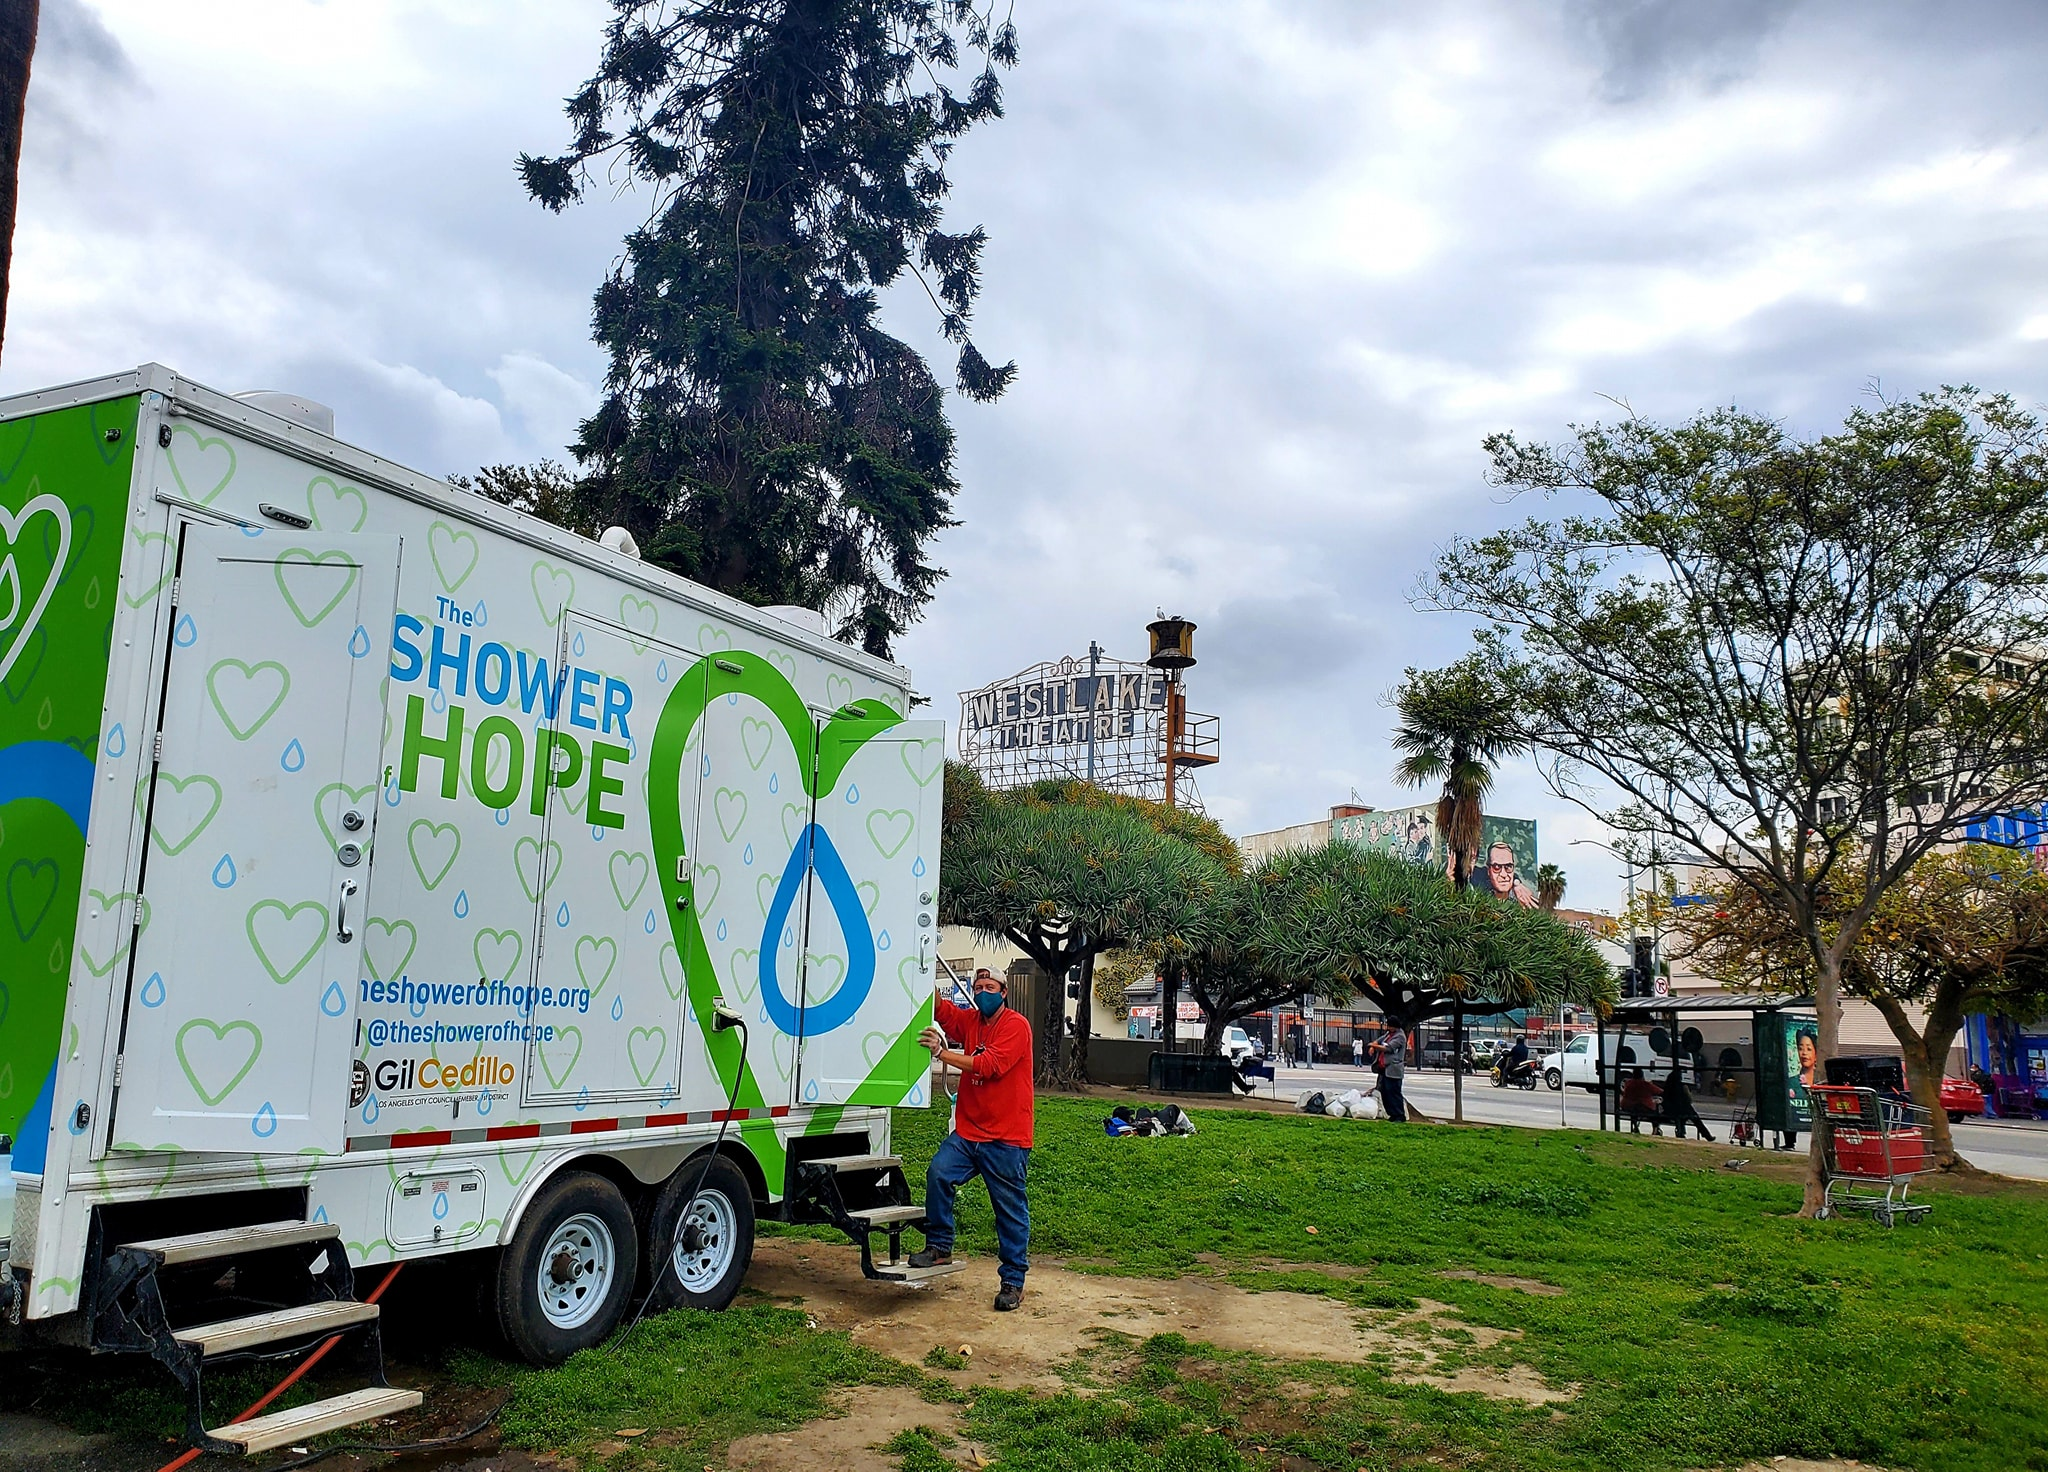 Shower of Hope MacArthur Park 4-22-2020 #1